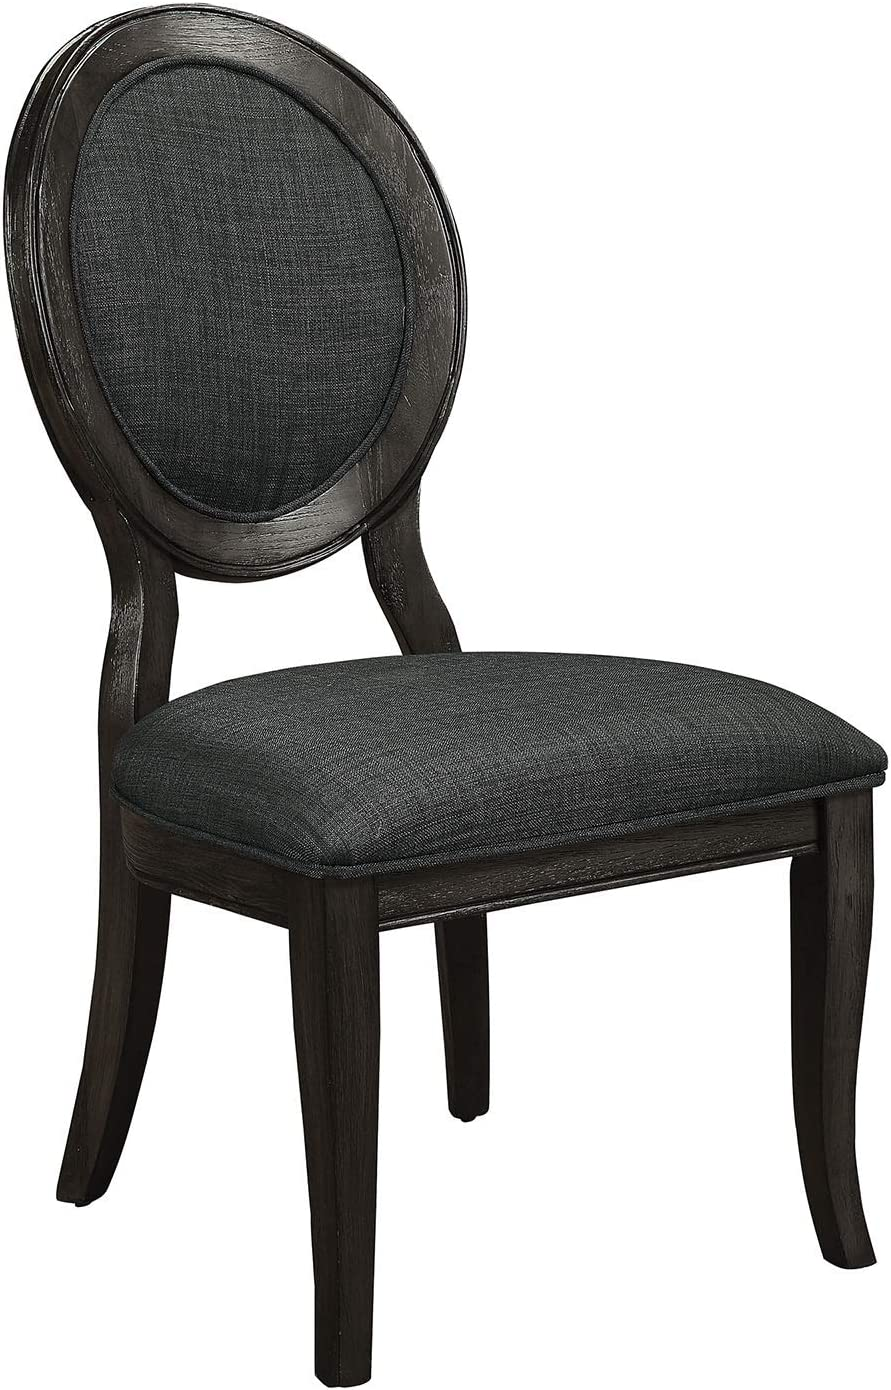 William's Home Furnishing Kathryn Side Chairs, Dark gray